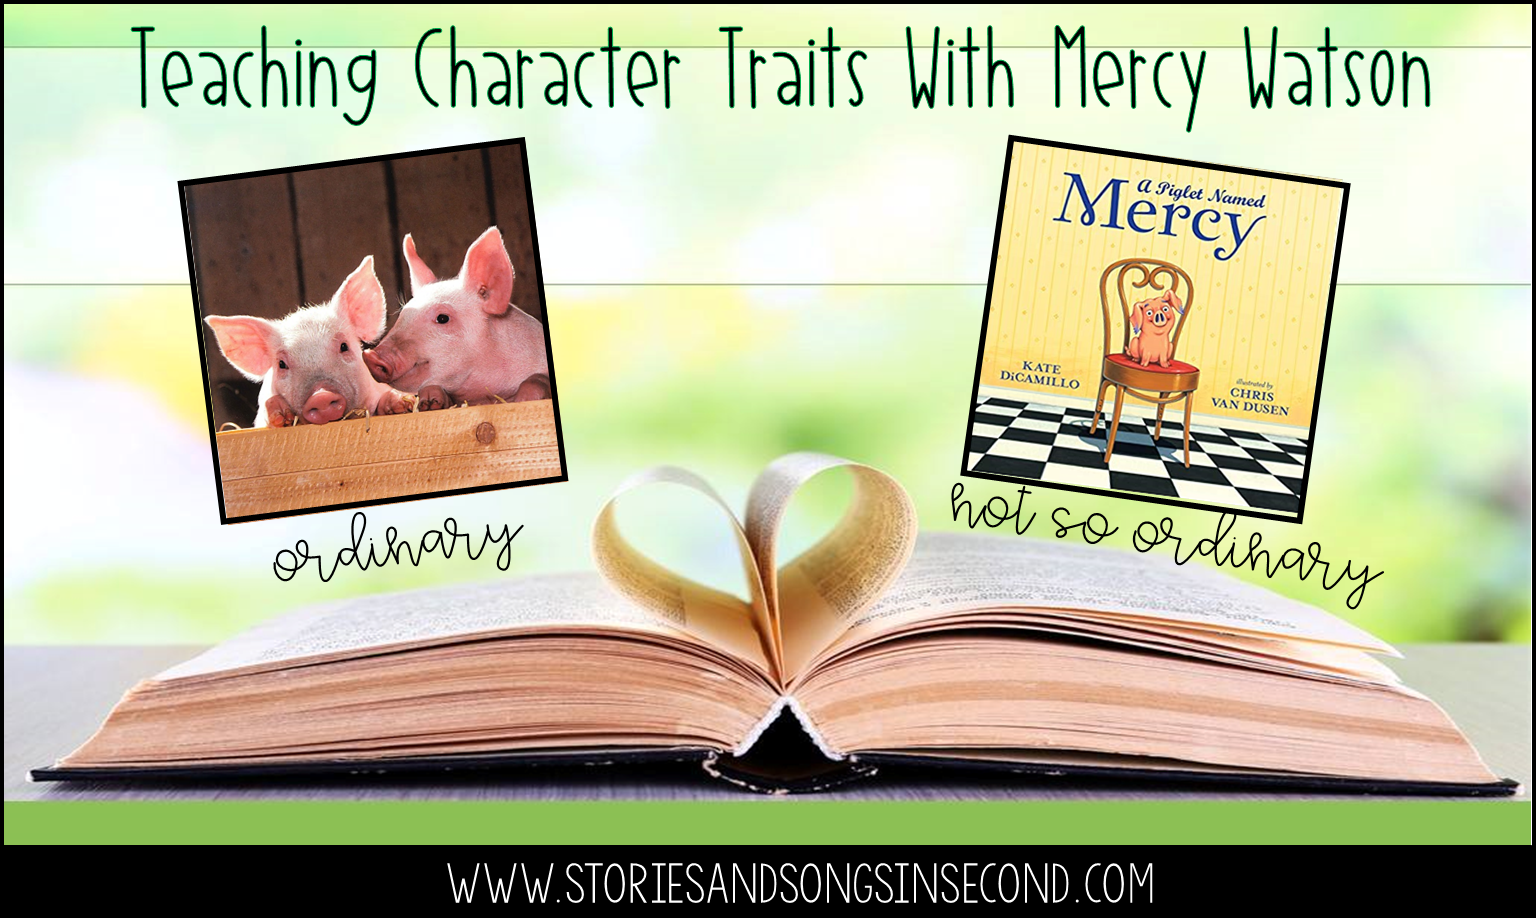 Teaching character traits with A Piglet Named Mercy by Kate DiCamillo is an absolute porcine wonder of a positive experience! Primary grade students will love using text vocabulary and events to compare and contrast ordinary barnyard animals with house pets.